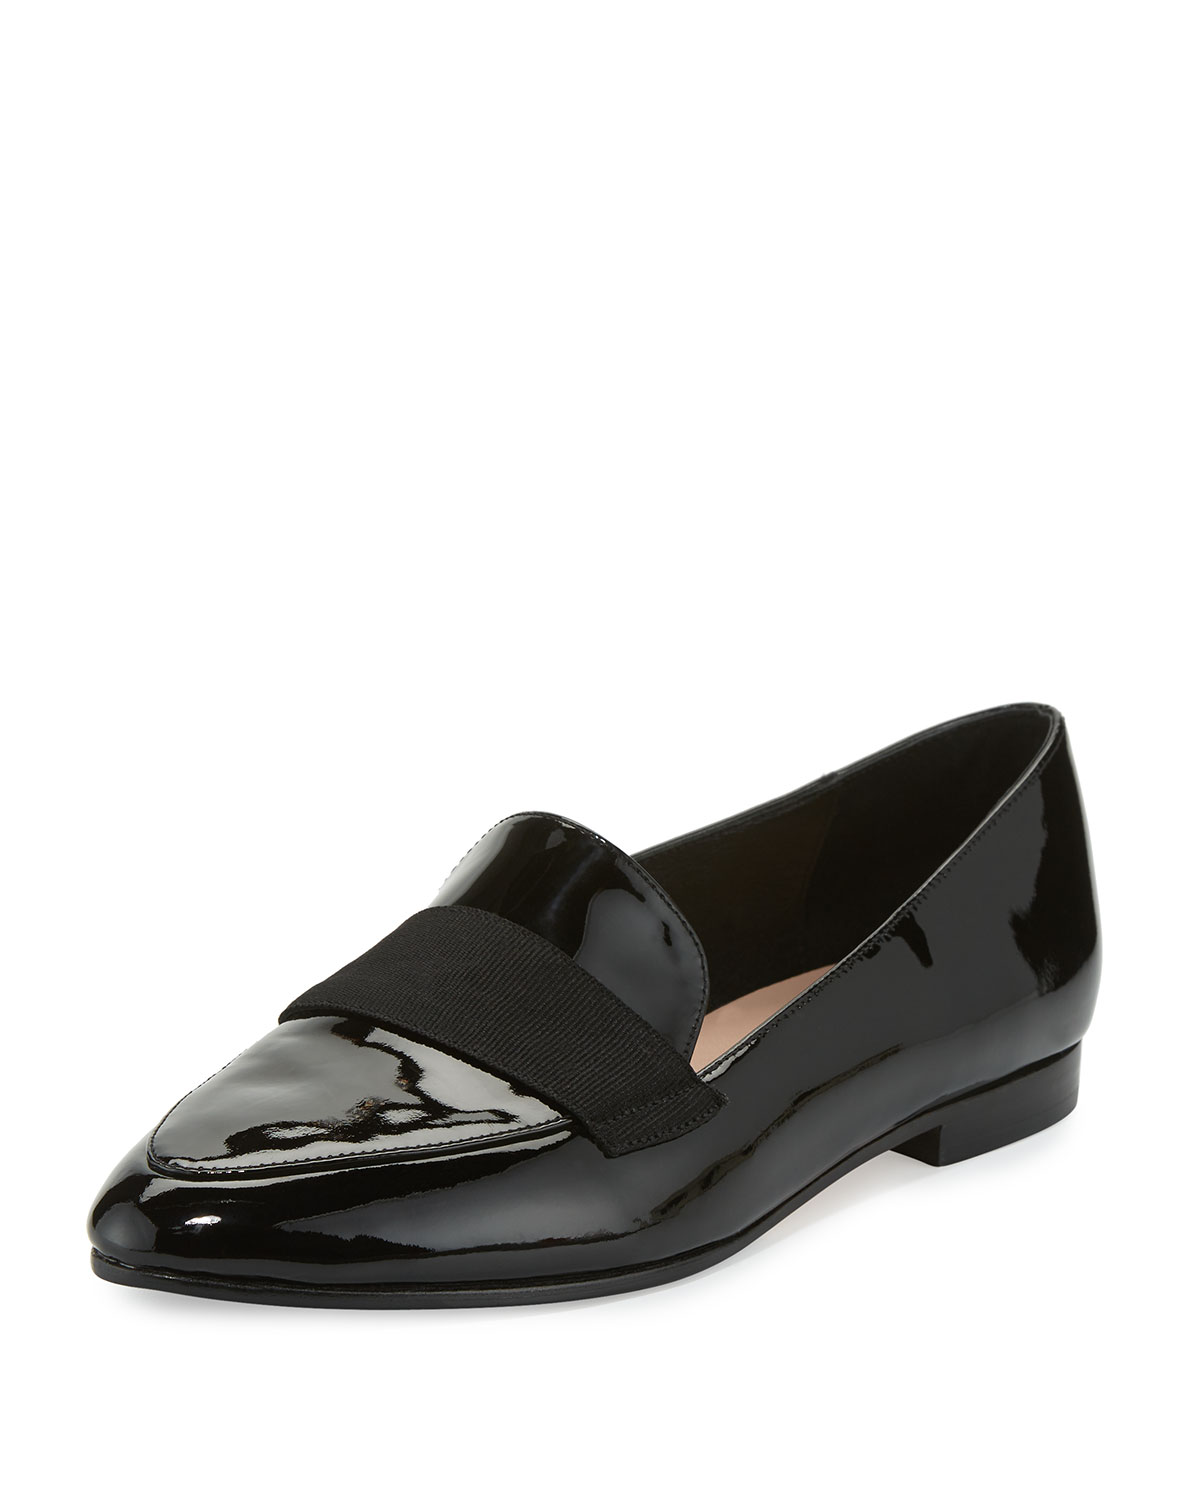 8f453dabd198 kate spade new york corina patent pointed-toe loafer